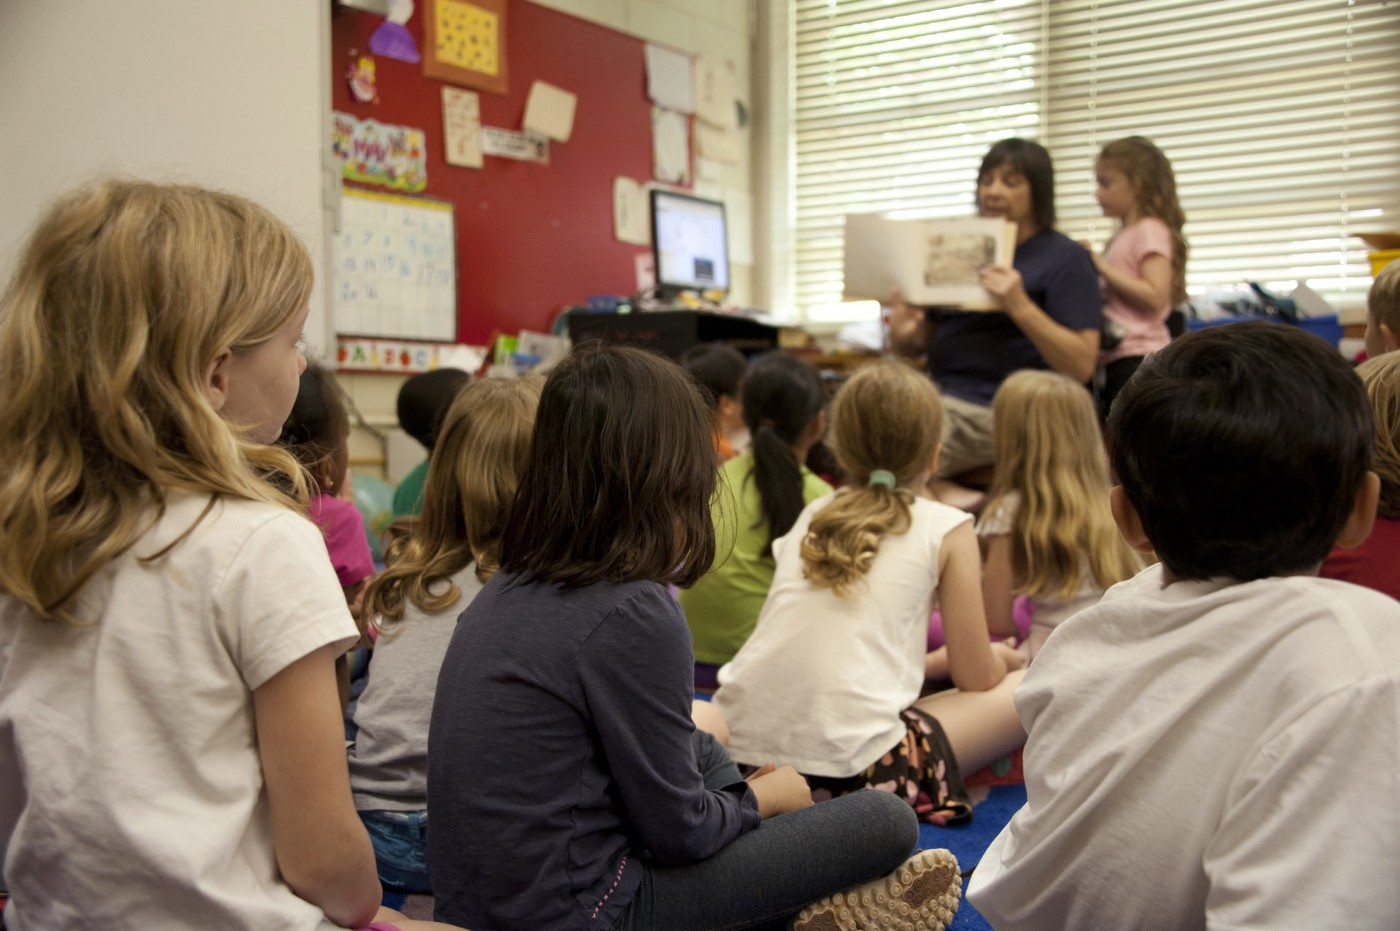 Children in a classroom being read to by a teacher.